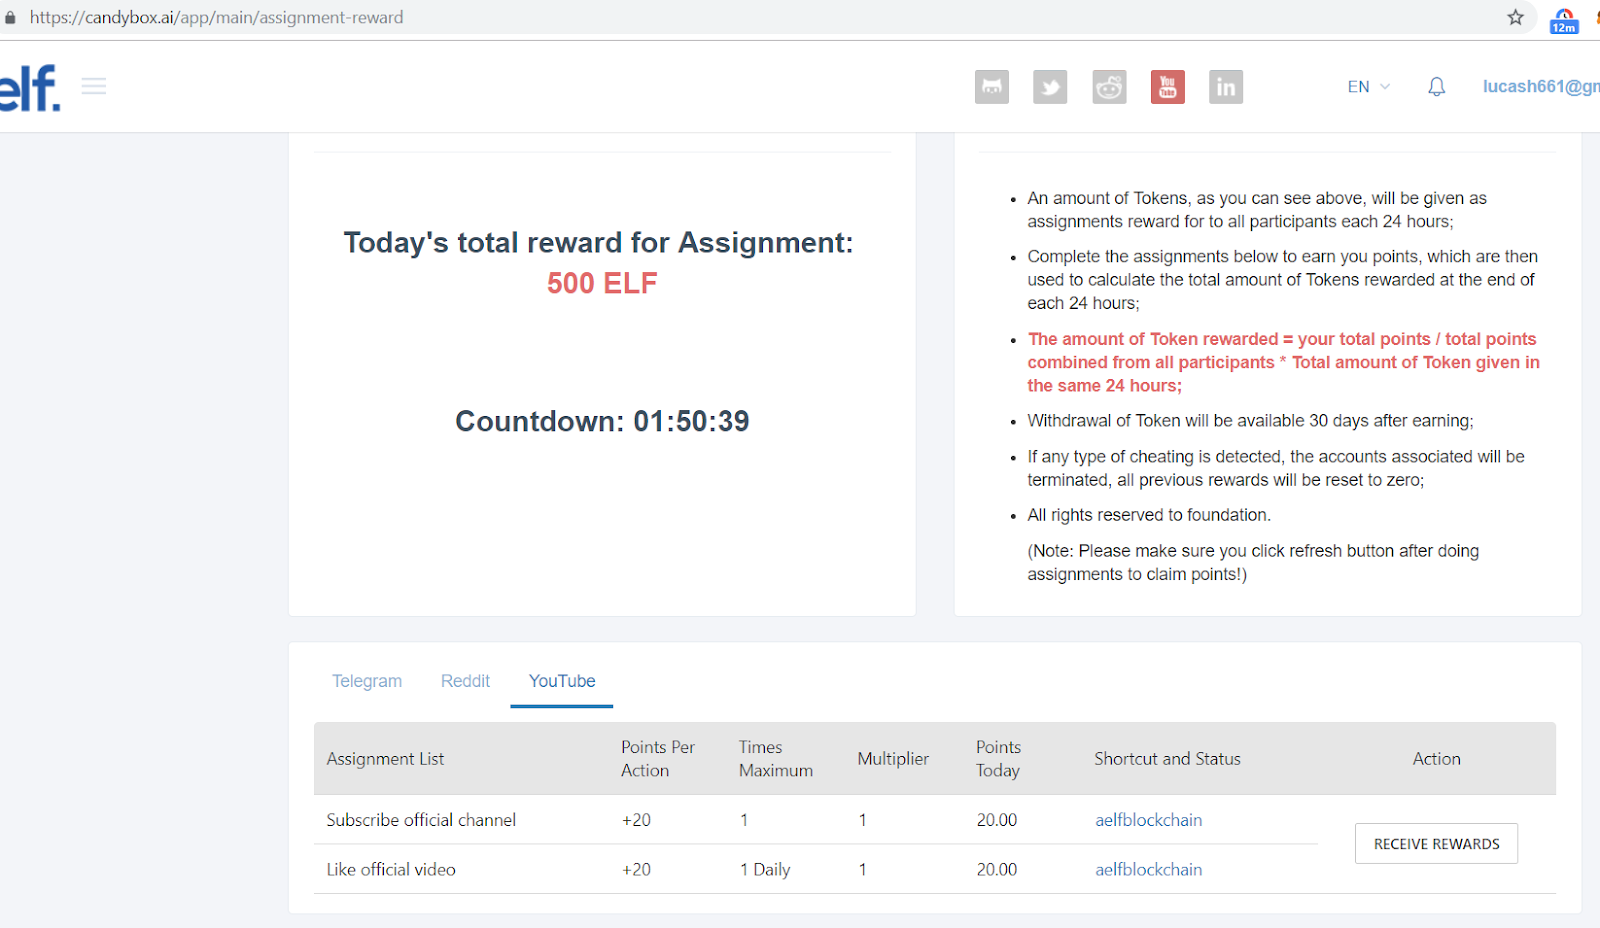 Aelf screen shot of Today's total reward for assignment.